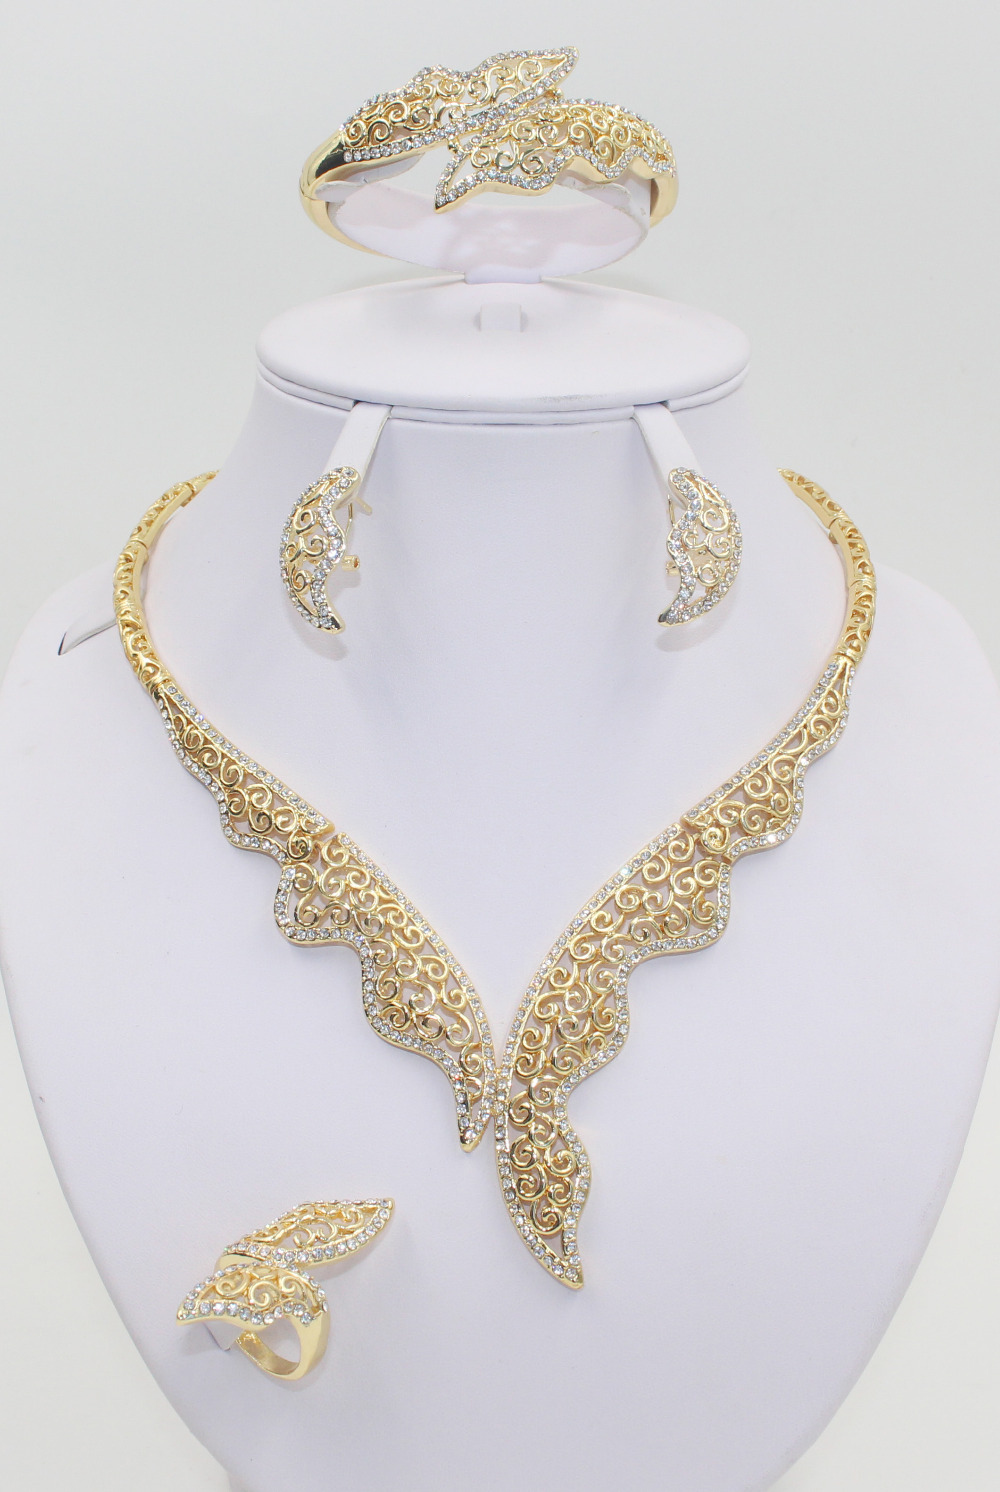 2015 new listed 18 k Gold Plated Mysterious Charming Necklace Fashion Romantic Wedding Bridal Costume Jewelry Sets(China (Mainland))